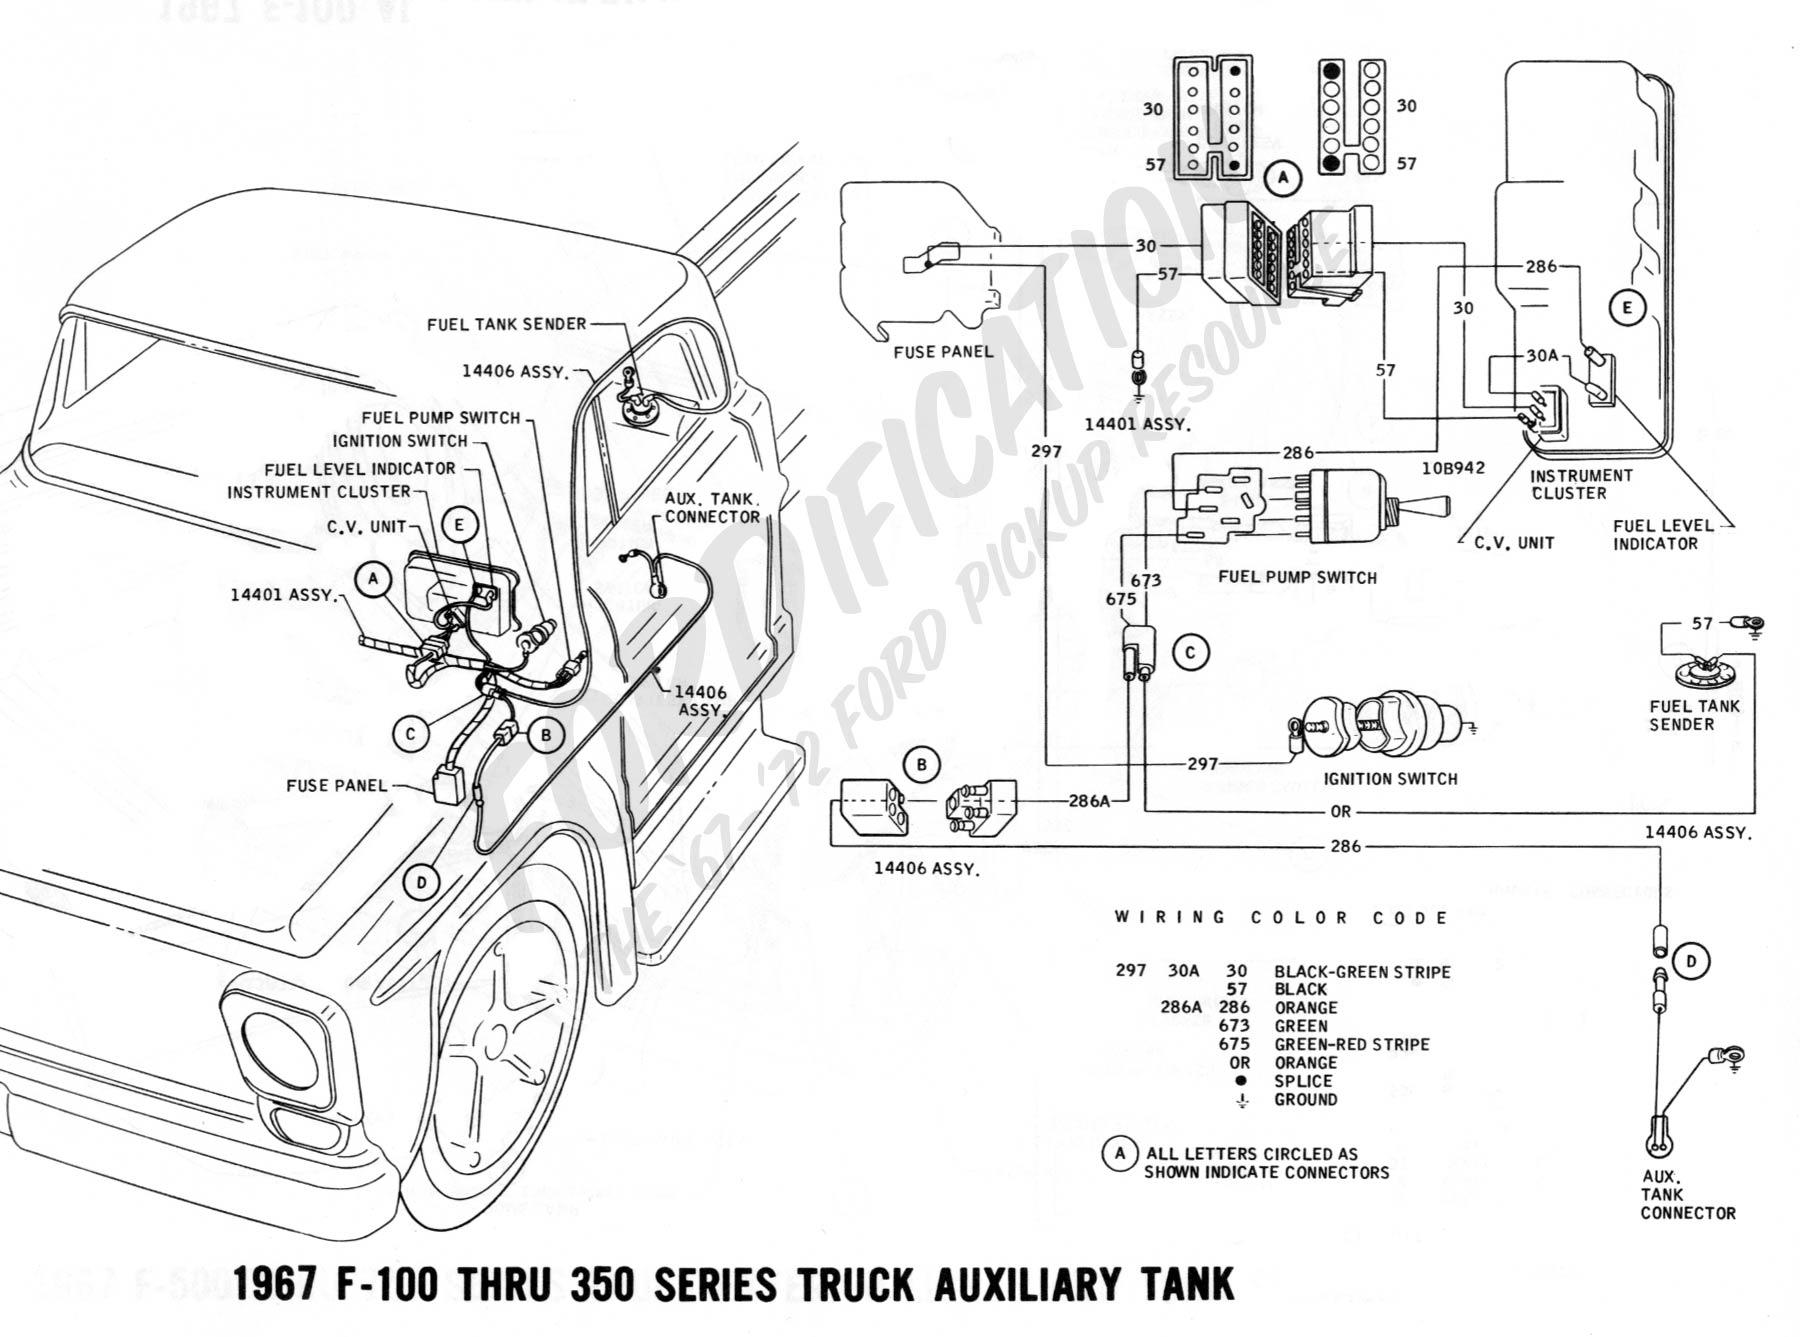 wiring 1967auxtank ford truck technical drawings and schematics section h wiring  at crackthecode.co